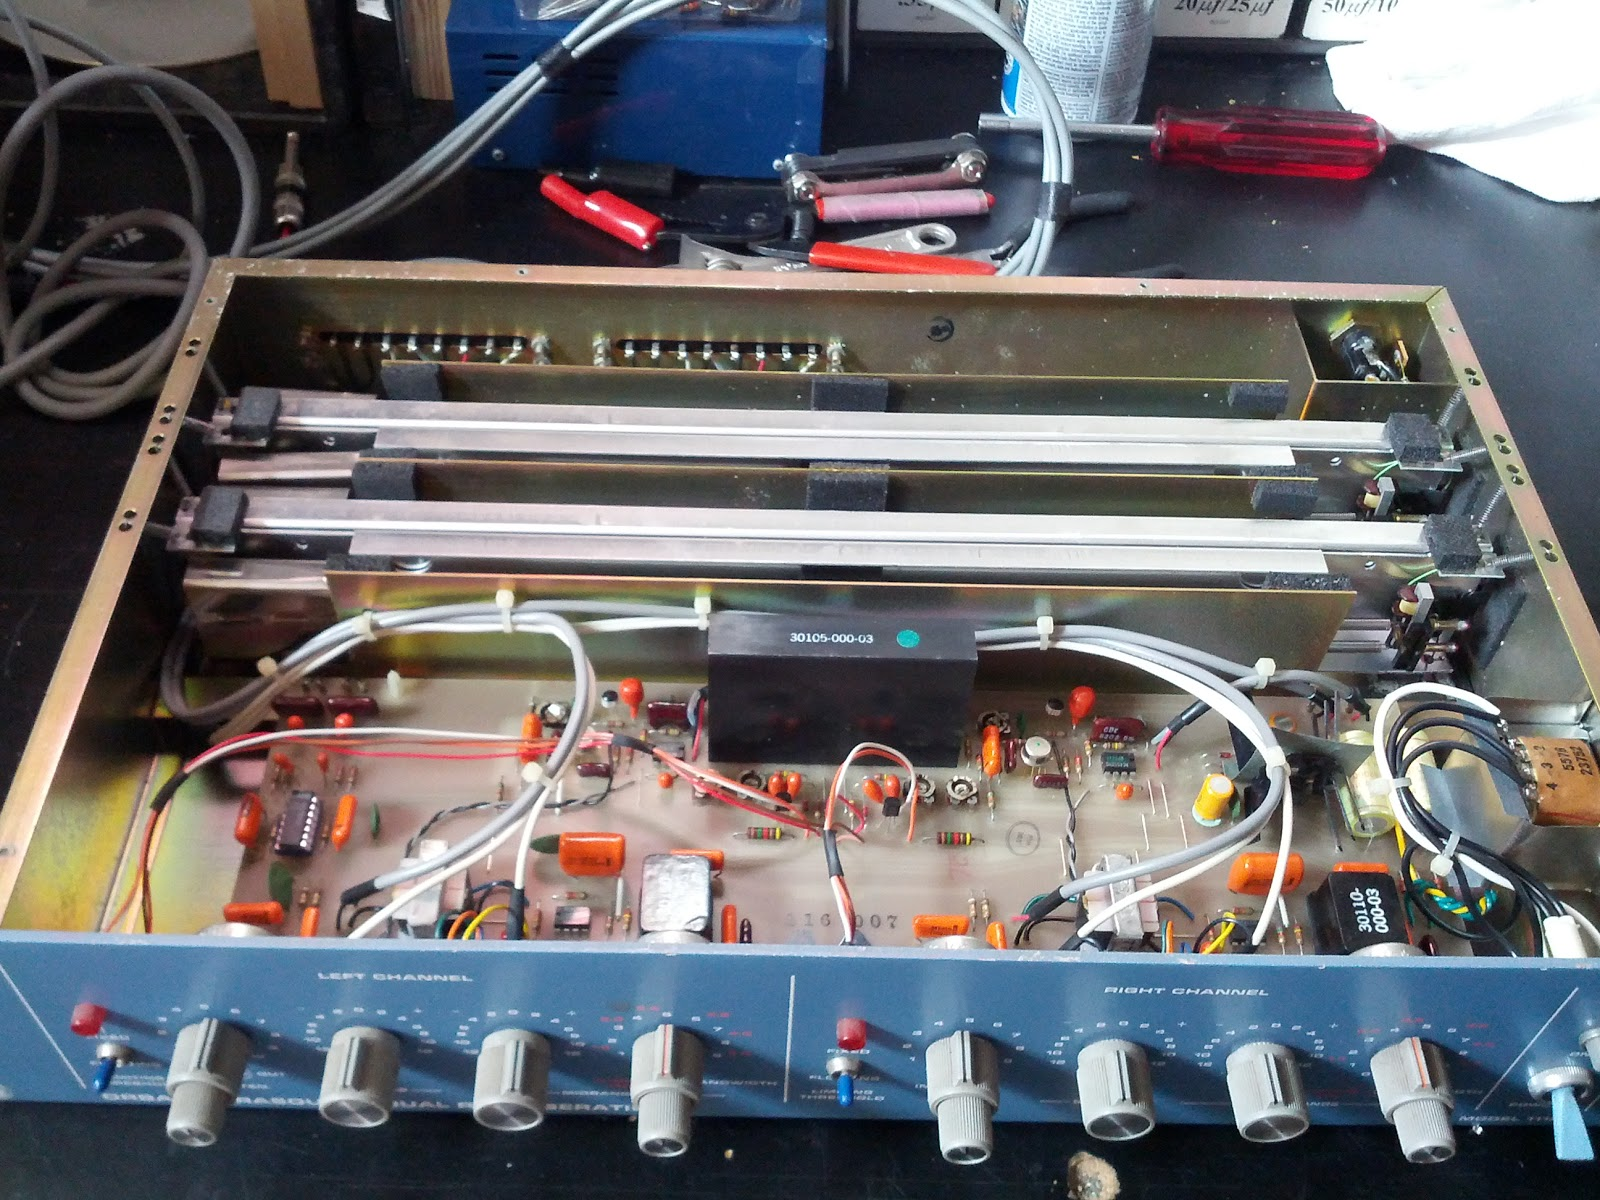 Orban 111b Spring Reverb Parasound Dual Reverberation Youth Schematic This Unit Came To The Bench With Left Channel Not Passing Signal And Right Sounding A Little Uninspired Diagnose